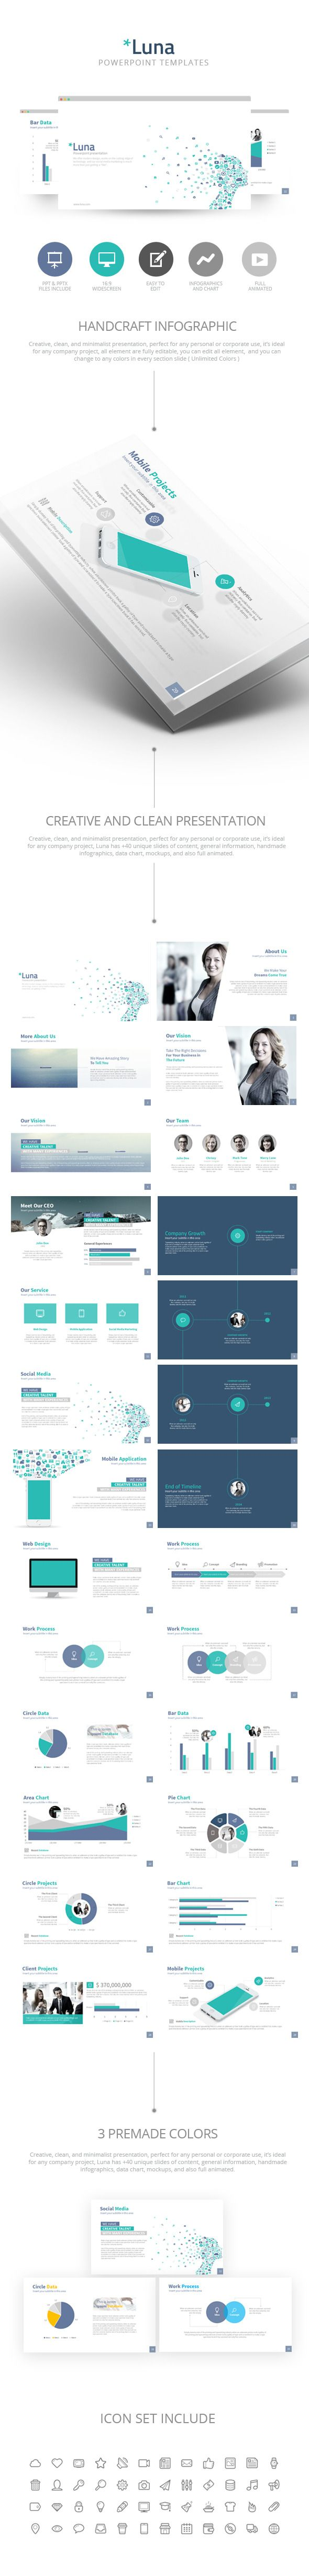 Luna Powerpoint Presentation Template PowerPoint Template / Theme / Presentation / Slides / Background / Power Point #powerpoint #template #theme